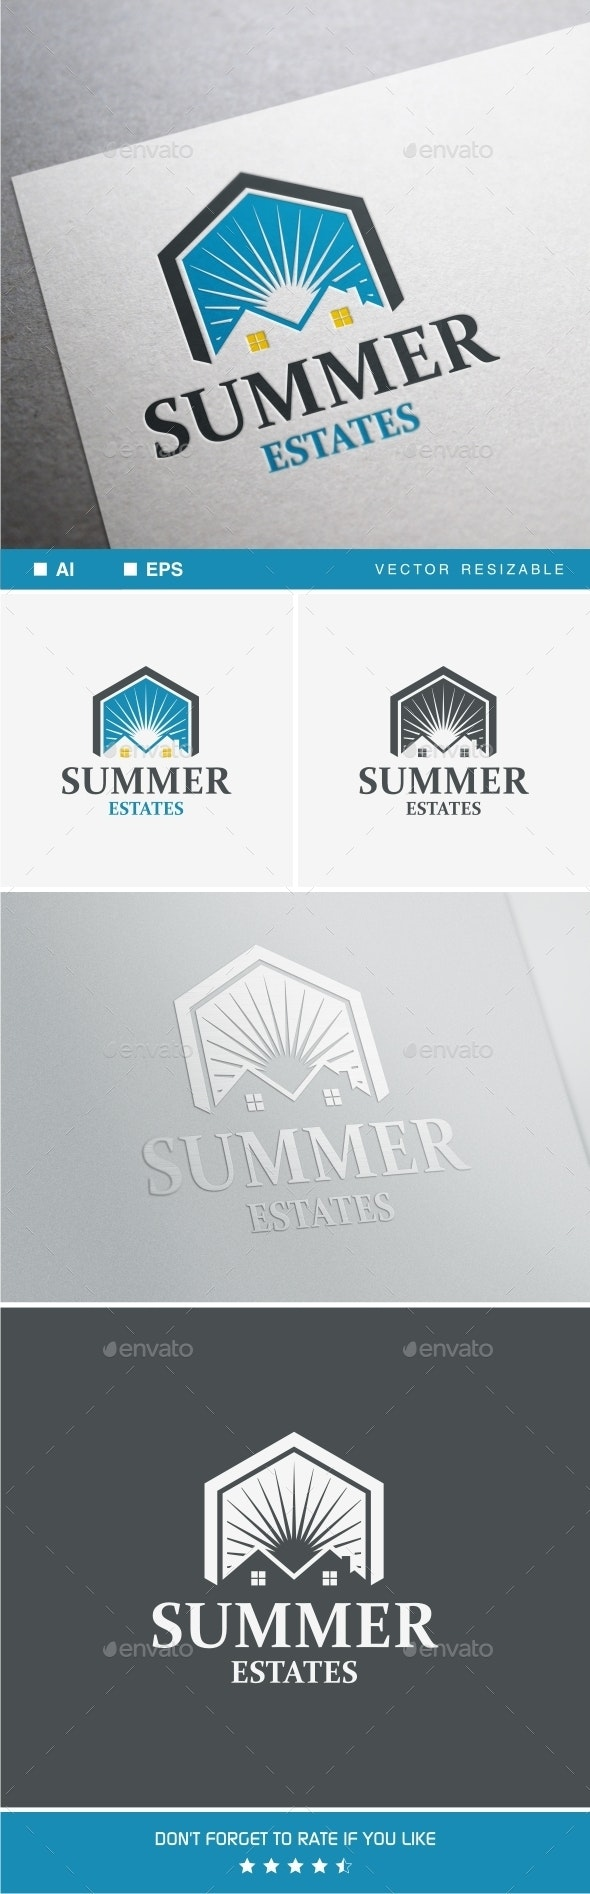 Summer Estates Logo